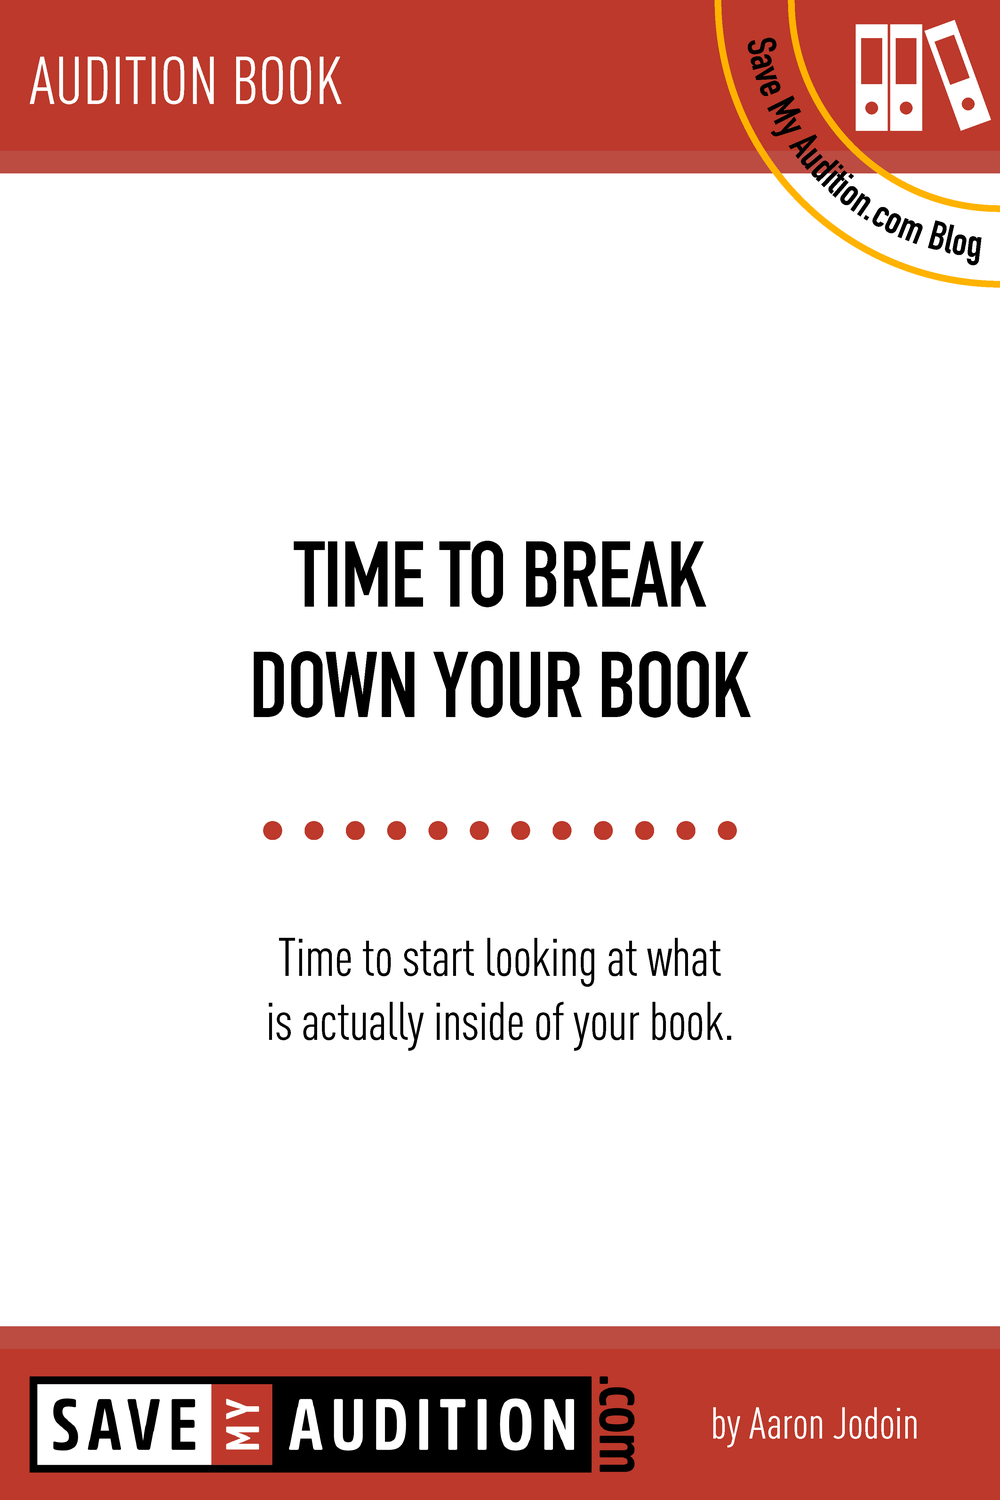 Time to Break Down Your Book-01.png